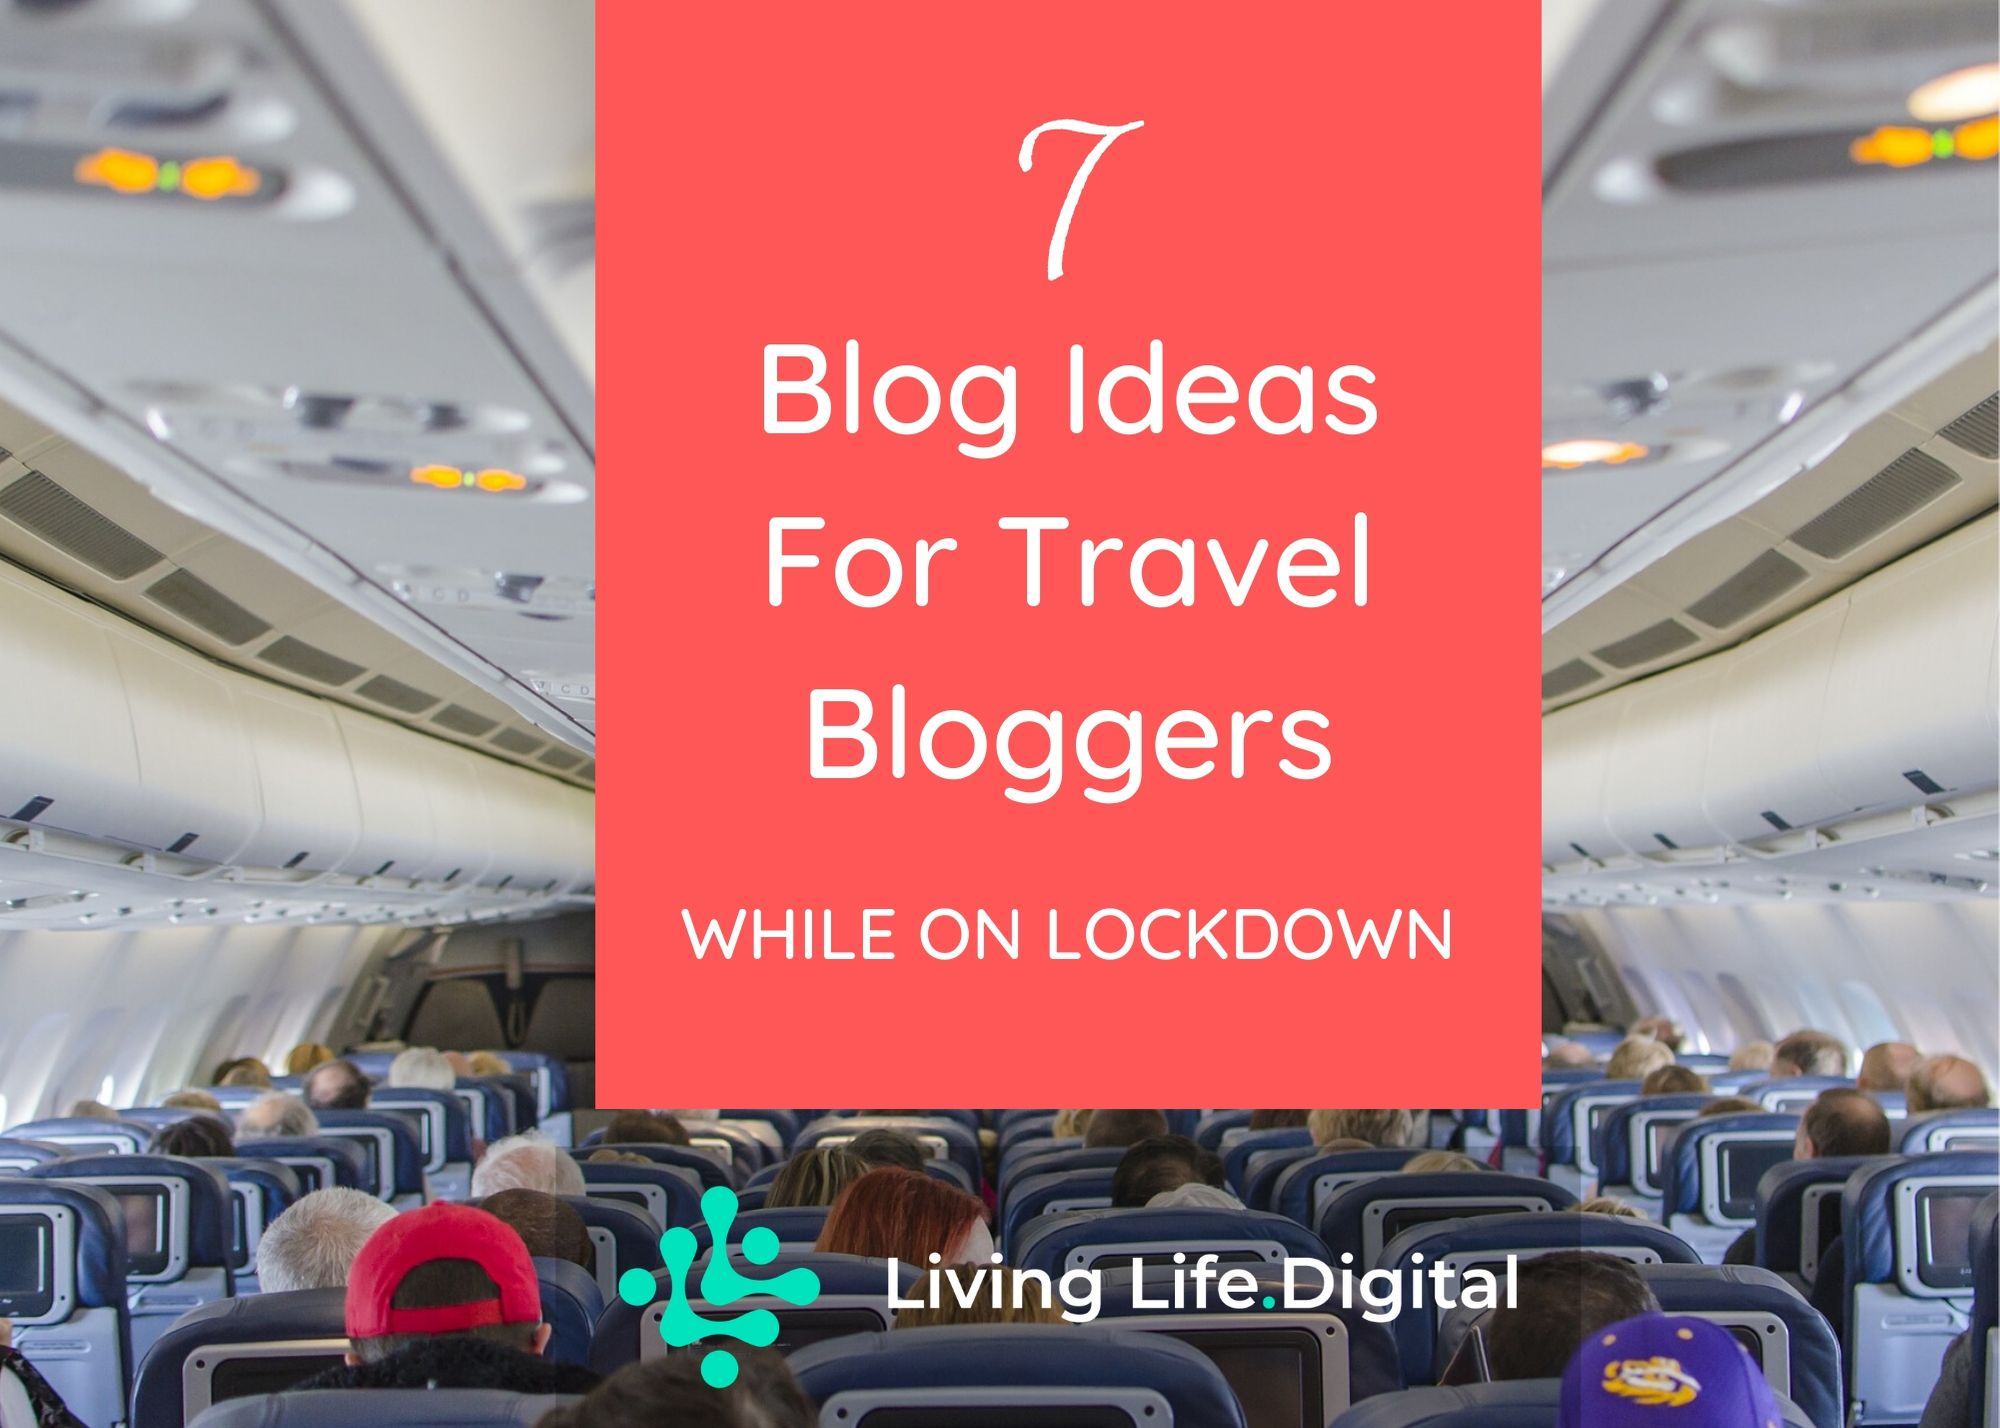 Blog Ideas For Travel Bloggers